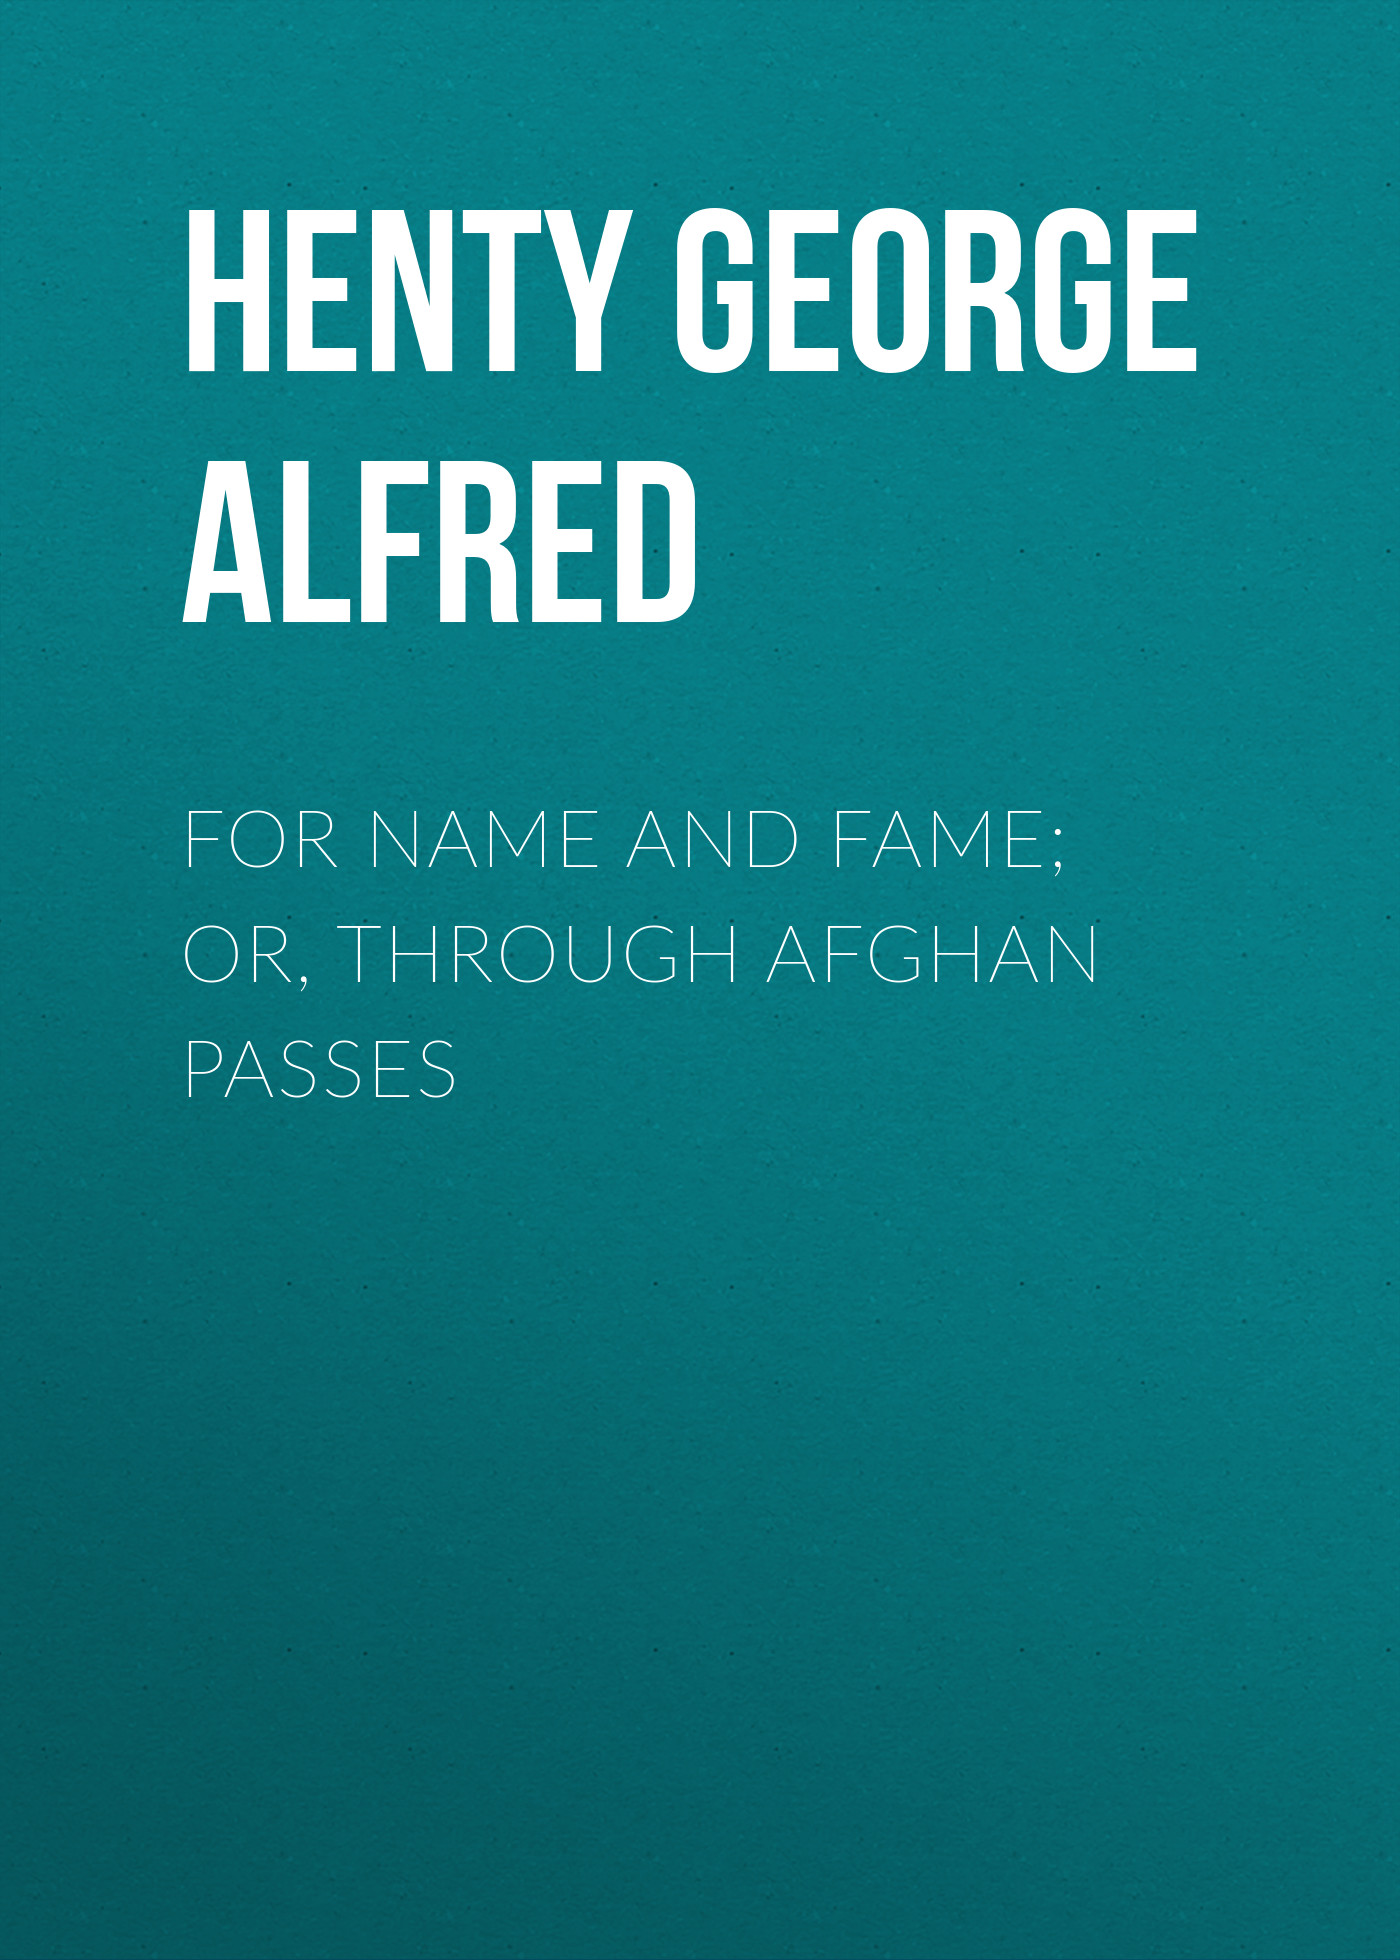 For Name and Fame; Or, Through Afghan Passes